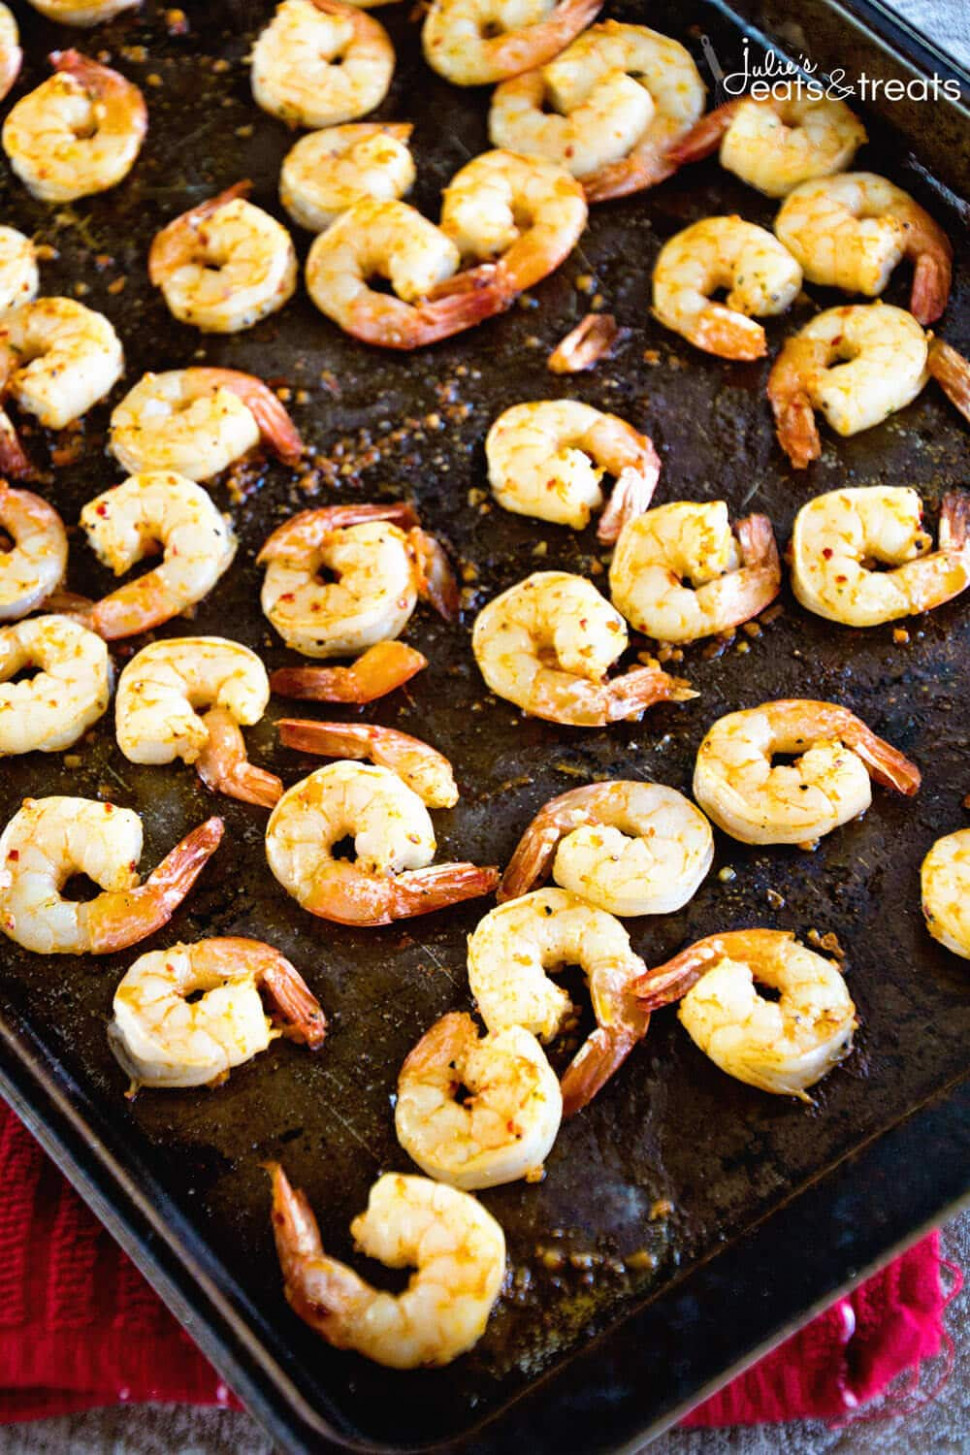 Cajun Broiled Shrimp - Healthy Date Night Recipes